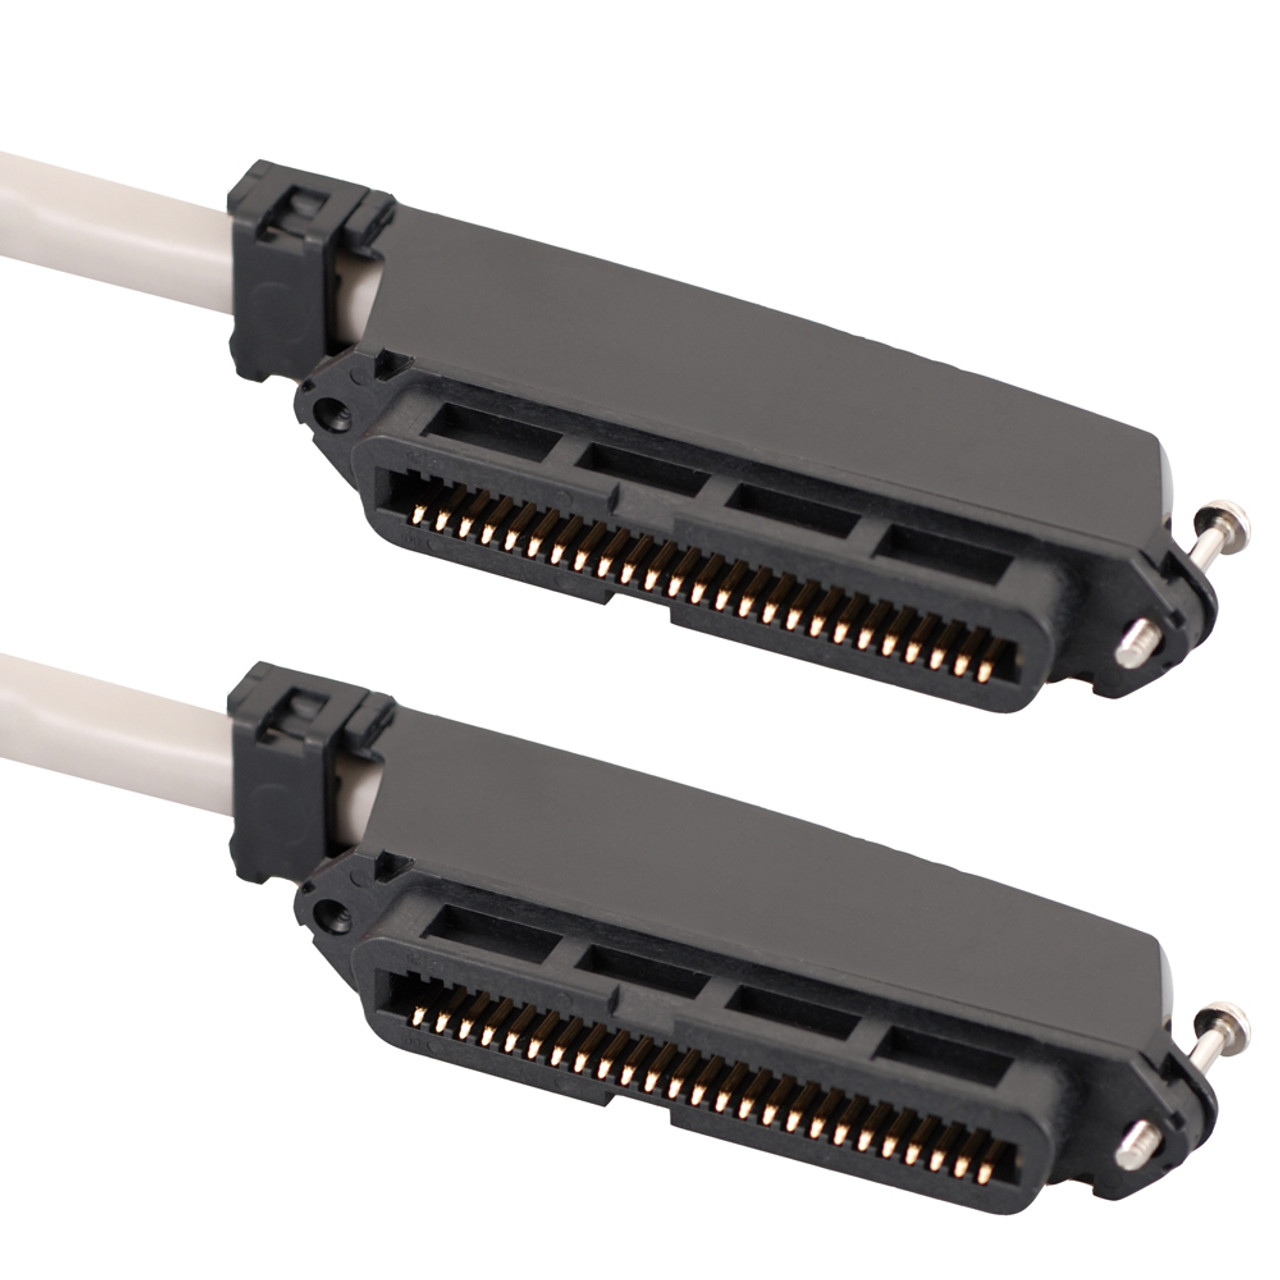 Amazing Cablesys Telco Cables With 50 Pin Female To Female Telco Wiring Cloud Geisbieswglorg